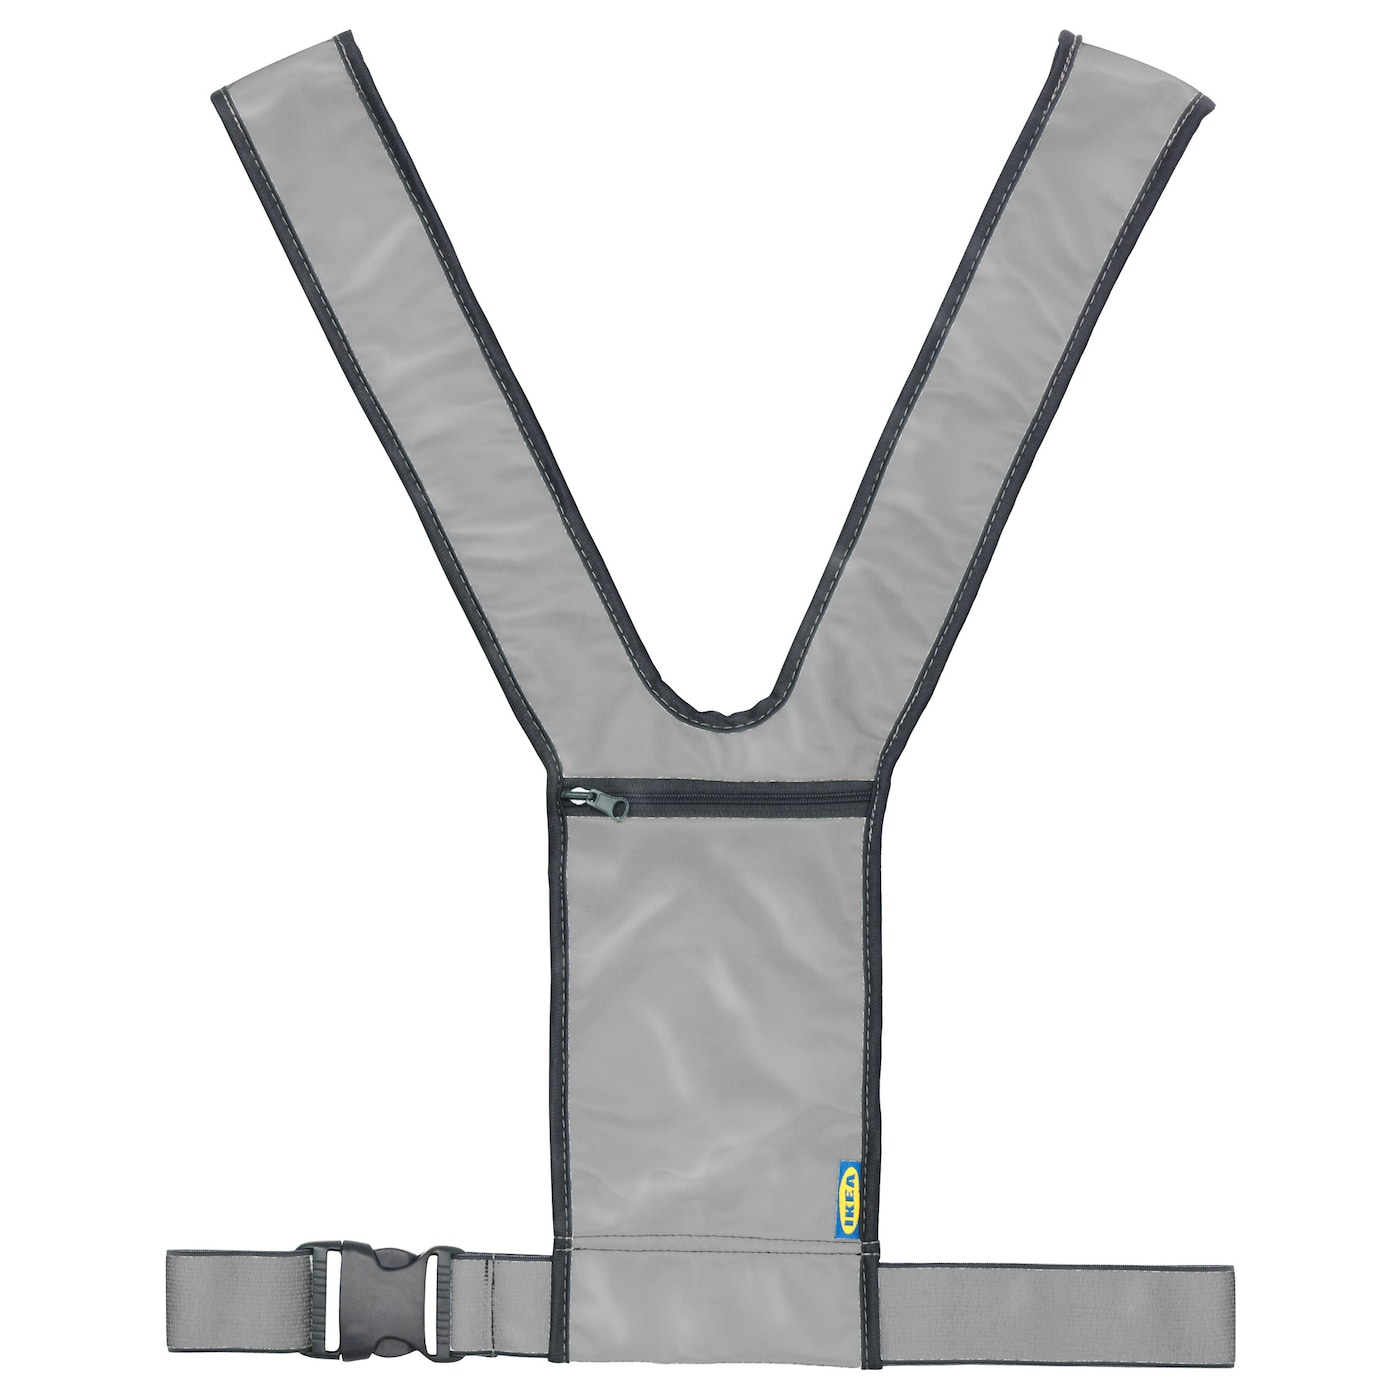 Ikea Leksvik Kinderbett Preis ~ IKEA BESKYDDA visibility harness The waist strap is adjustable for a